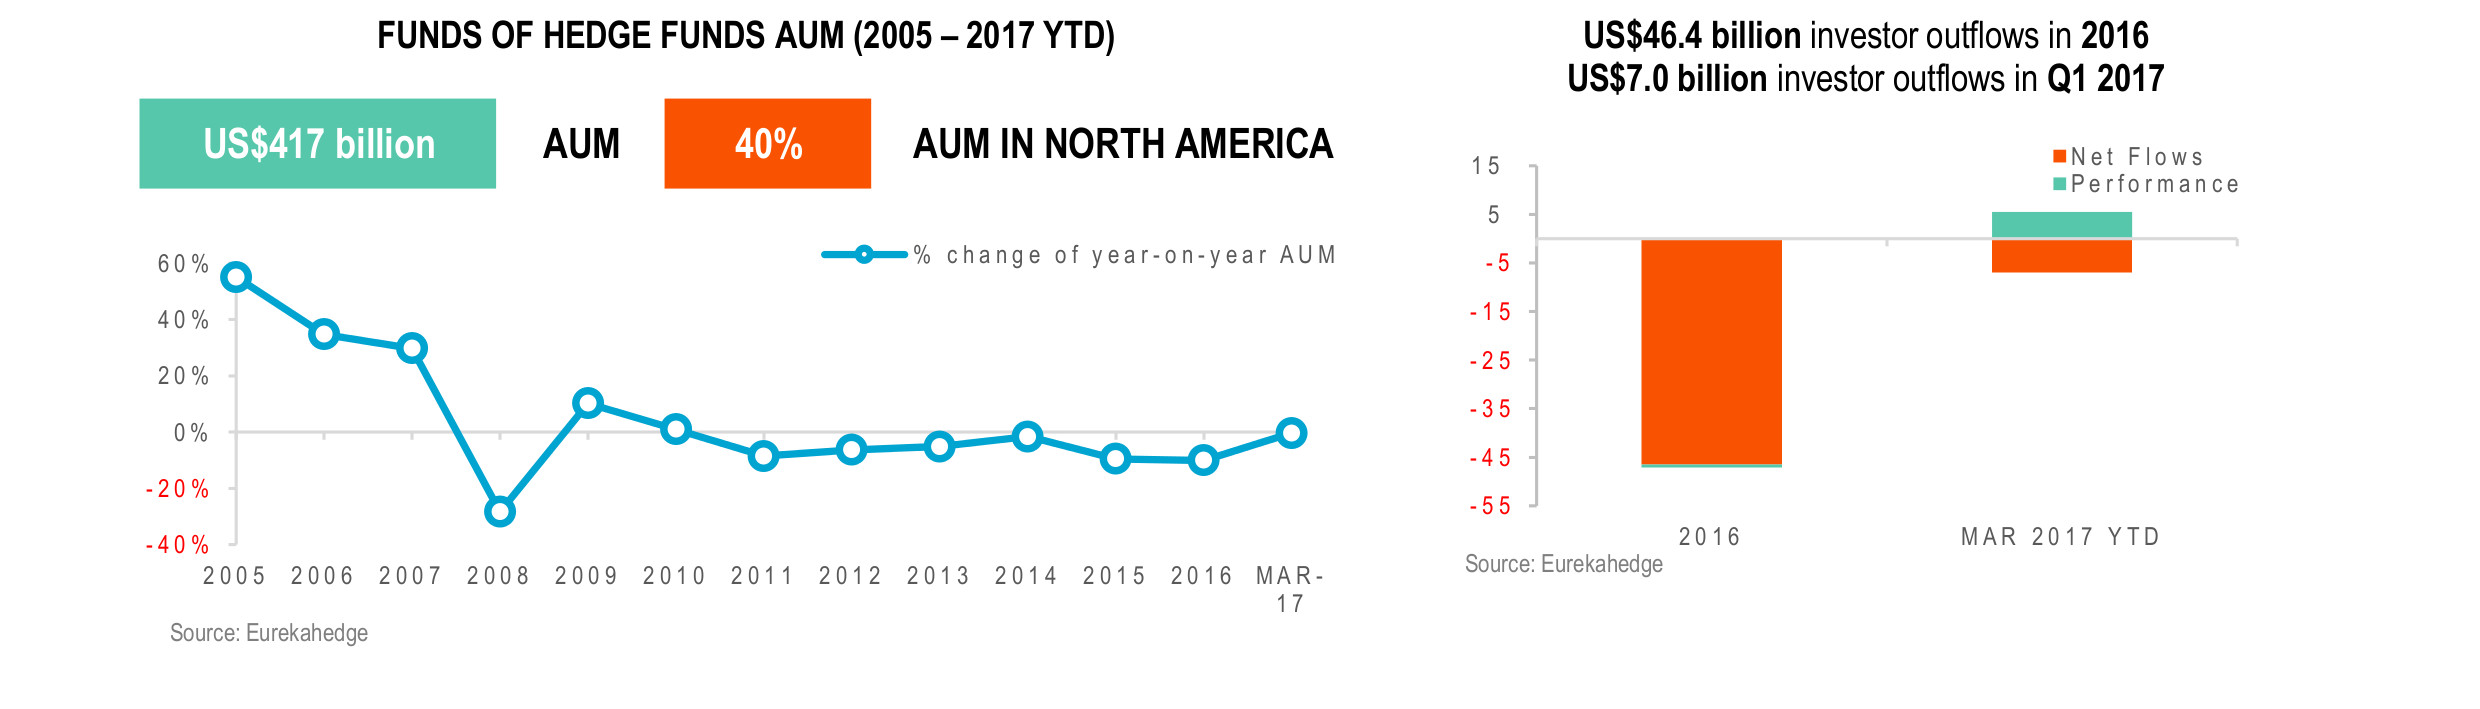 Global Funds of Hedge Fund Infographic May 2017- AUM